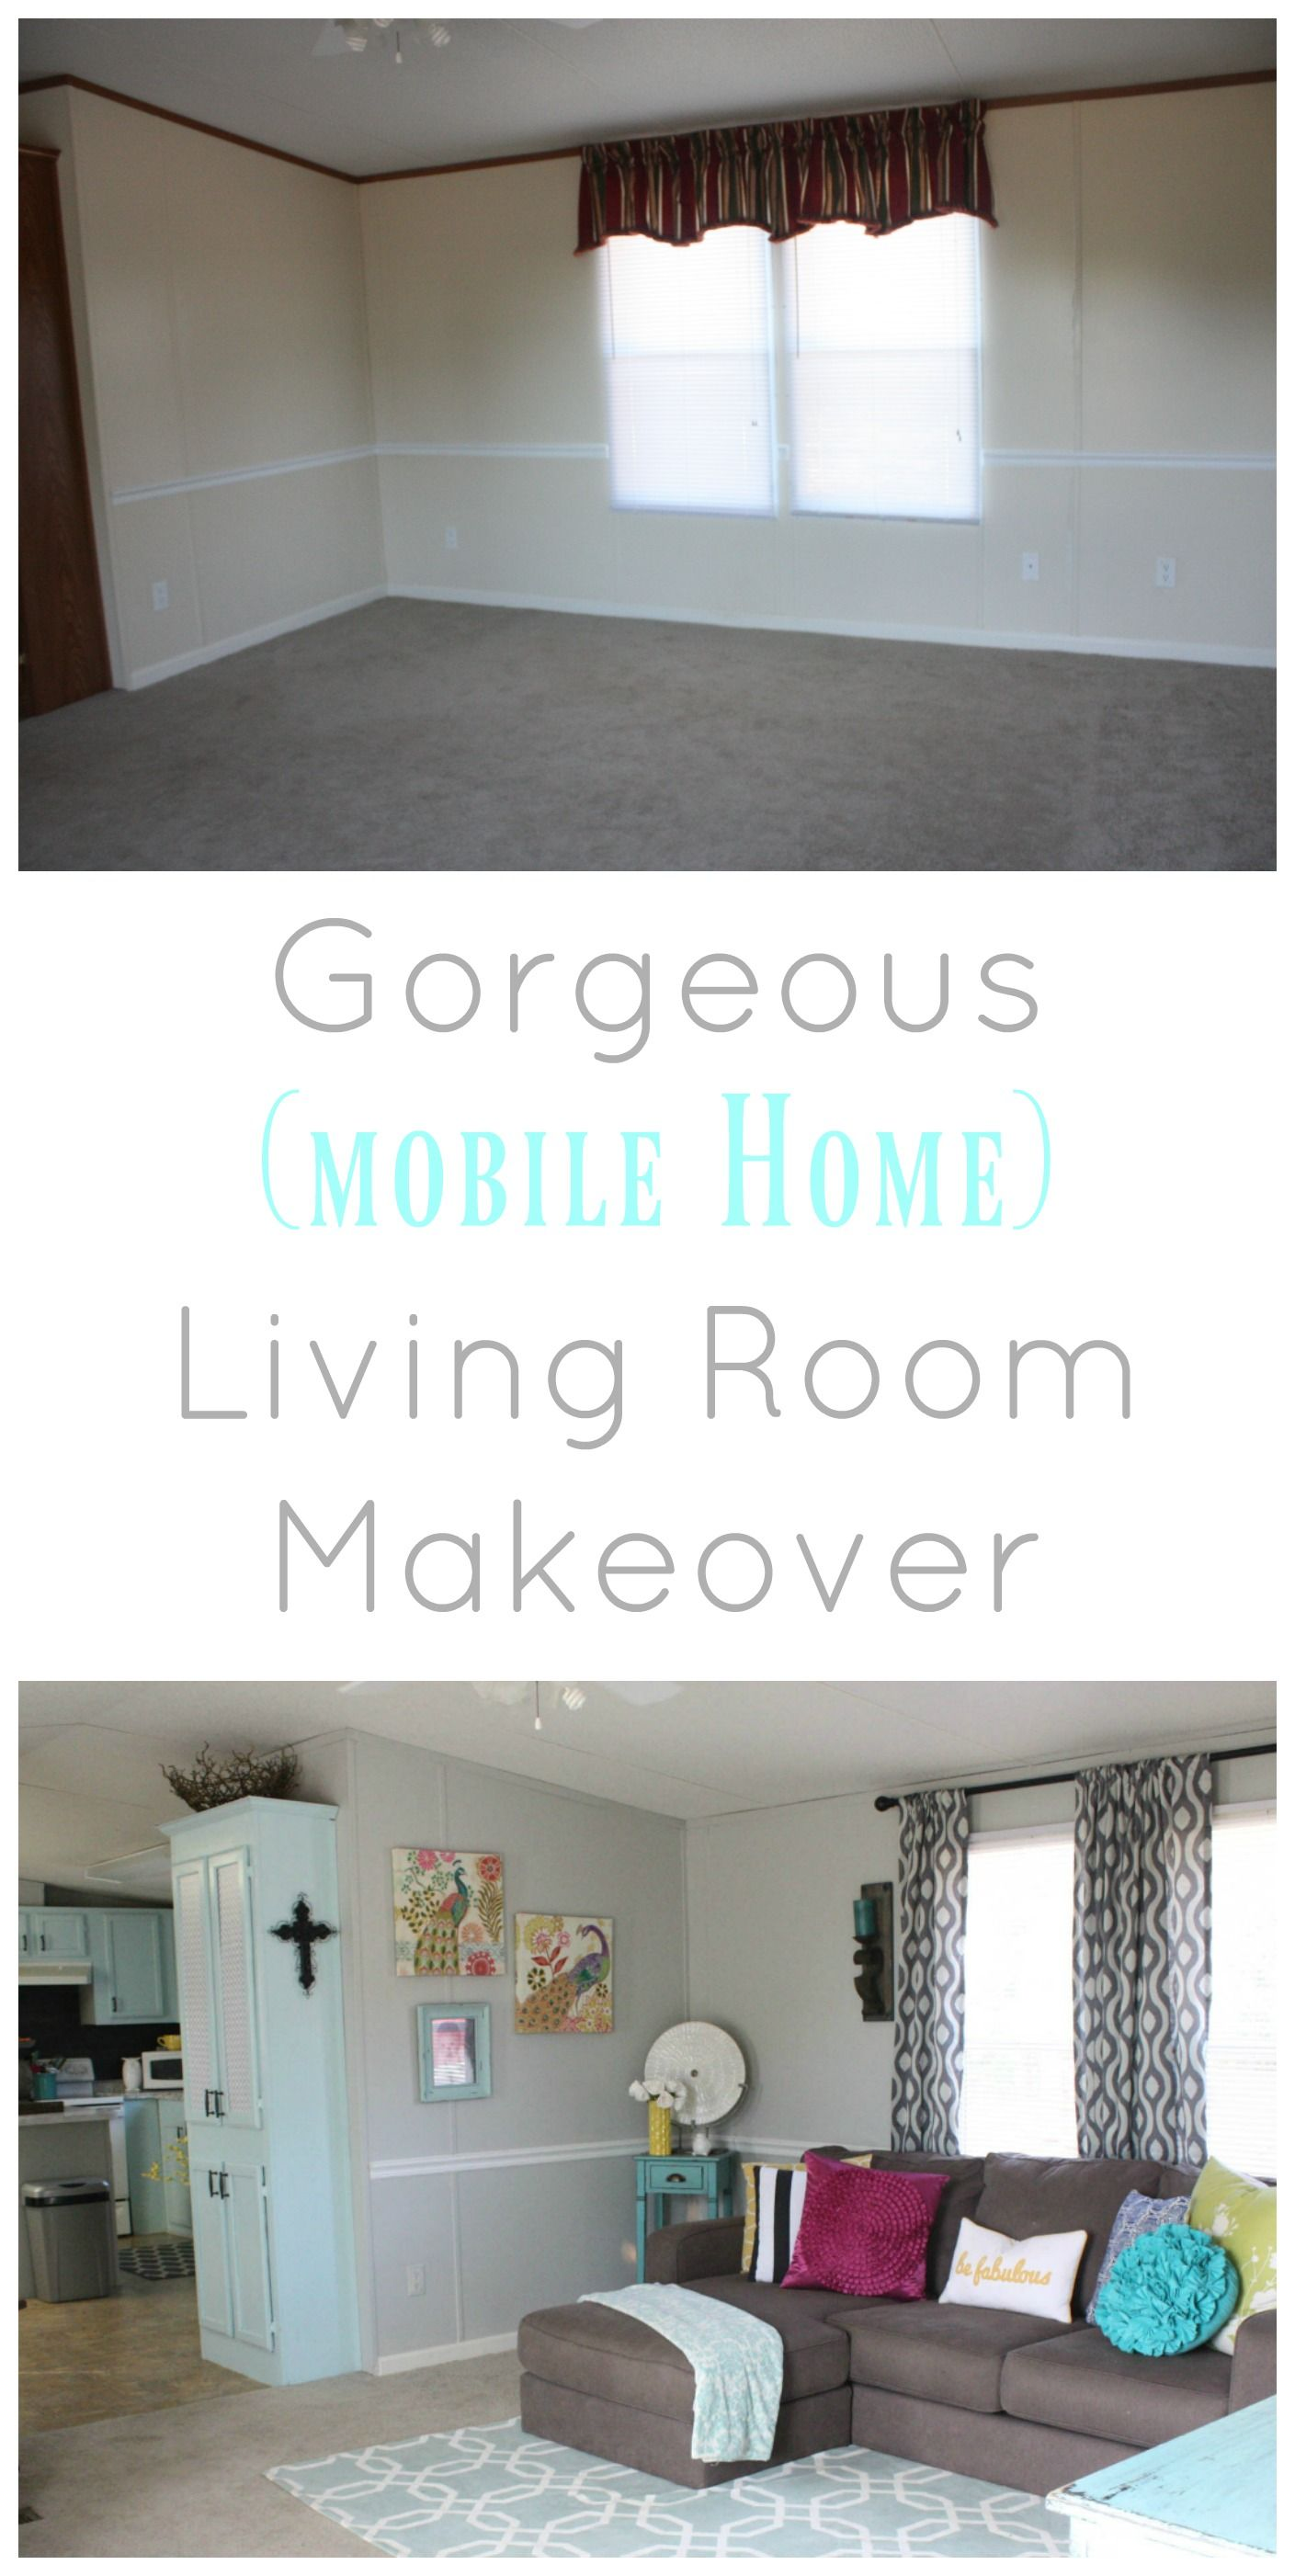 Mobile Home Living Room Reveal | Pinterest | Single wide, Budgeting ...